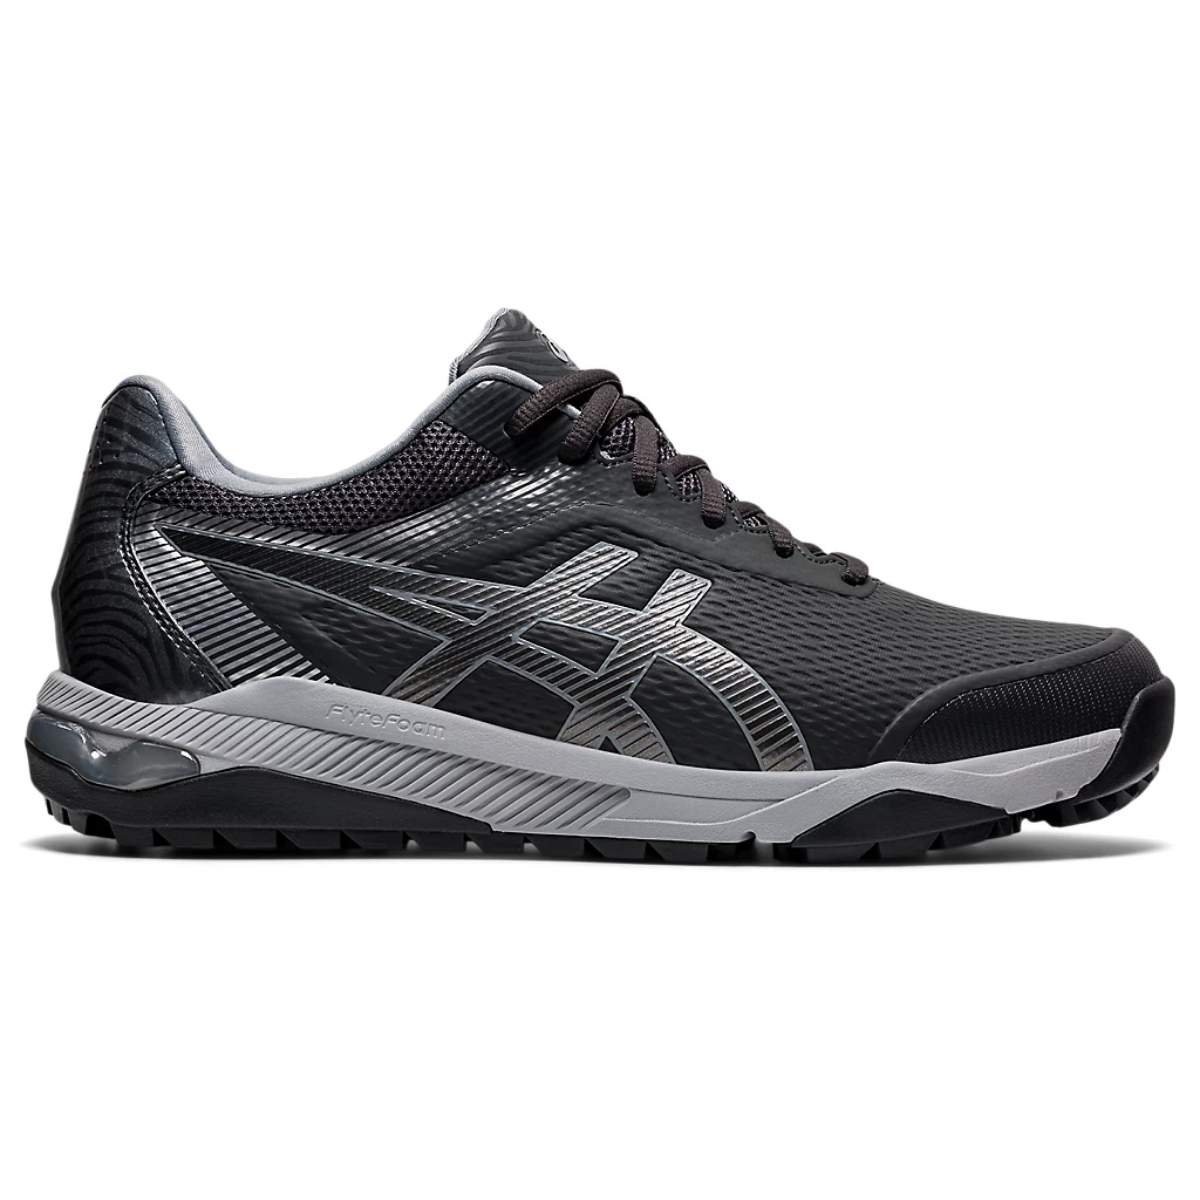 Asics Men's Gel Course Ace Golf Shoe - Graphite